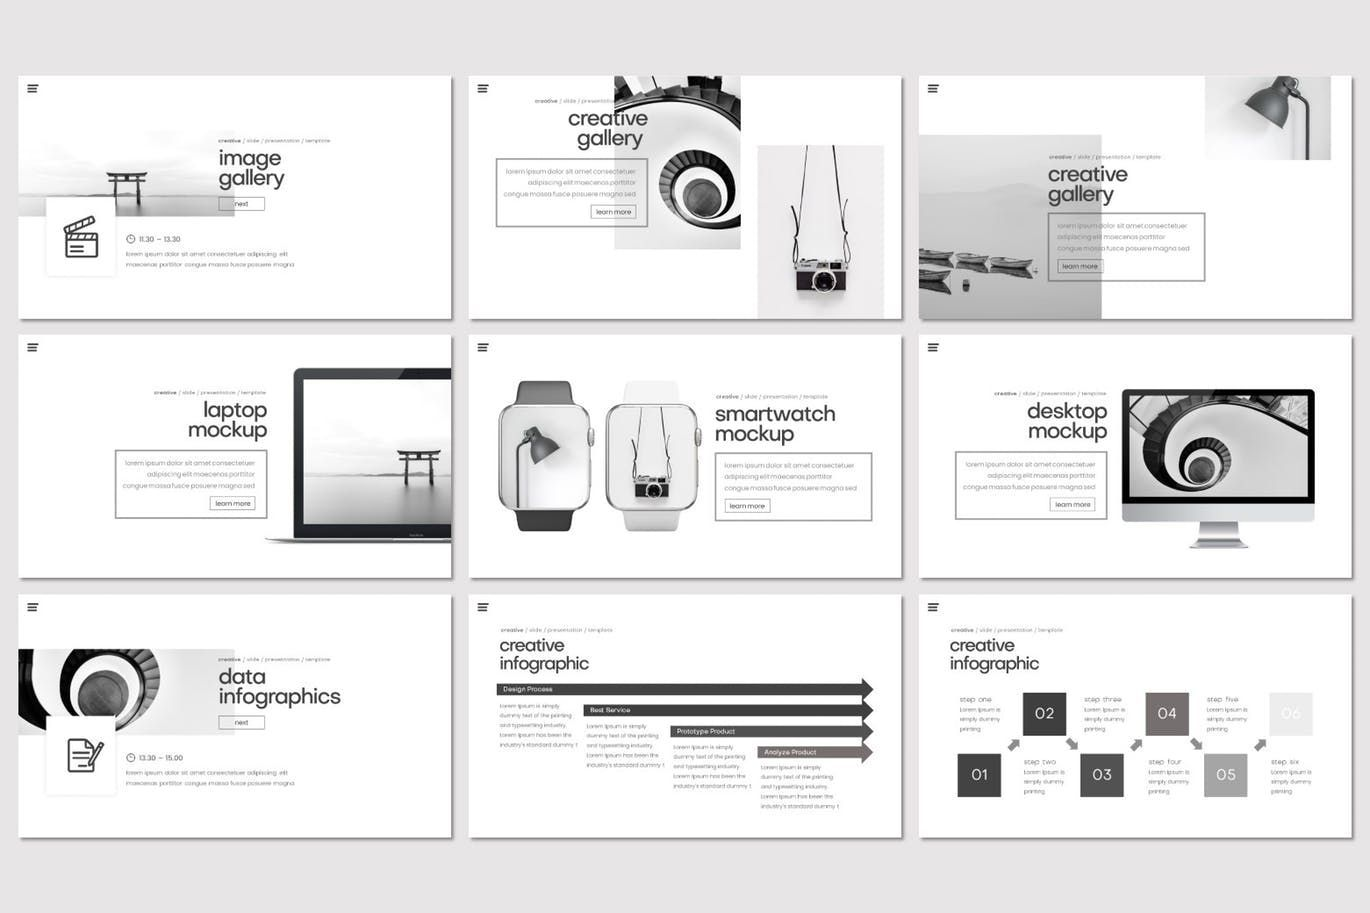 Kondese - PowerPoint Template, Slide 4, 07878, Presentation Templates — PoweredTemplate.com